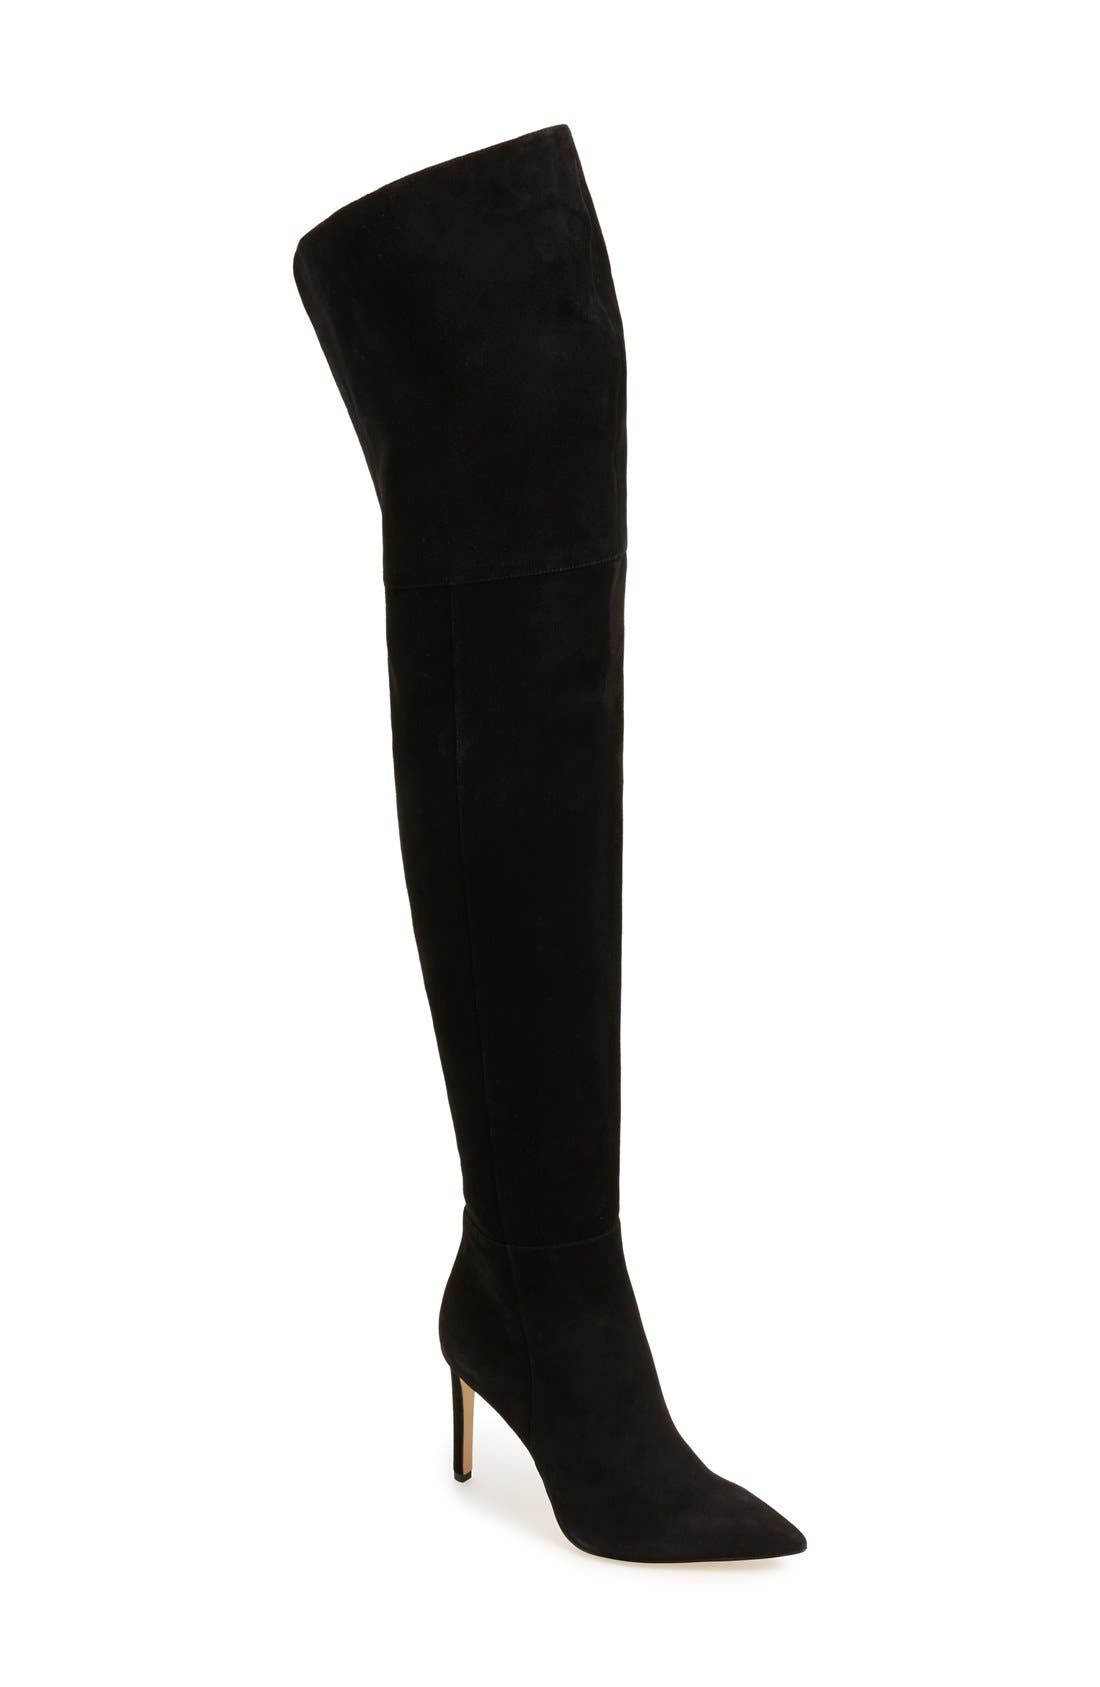 Bernadette Over the Knee Boot,                             Main thumbnail 1, color,                             001